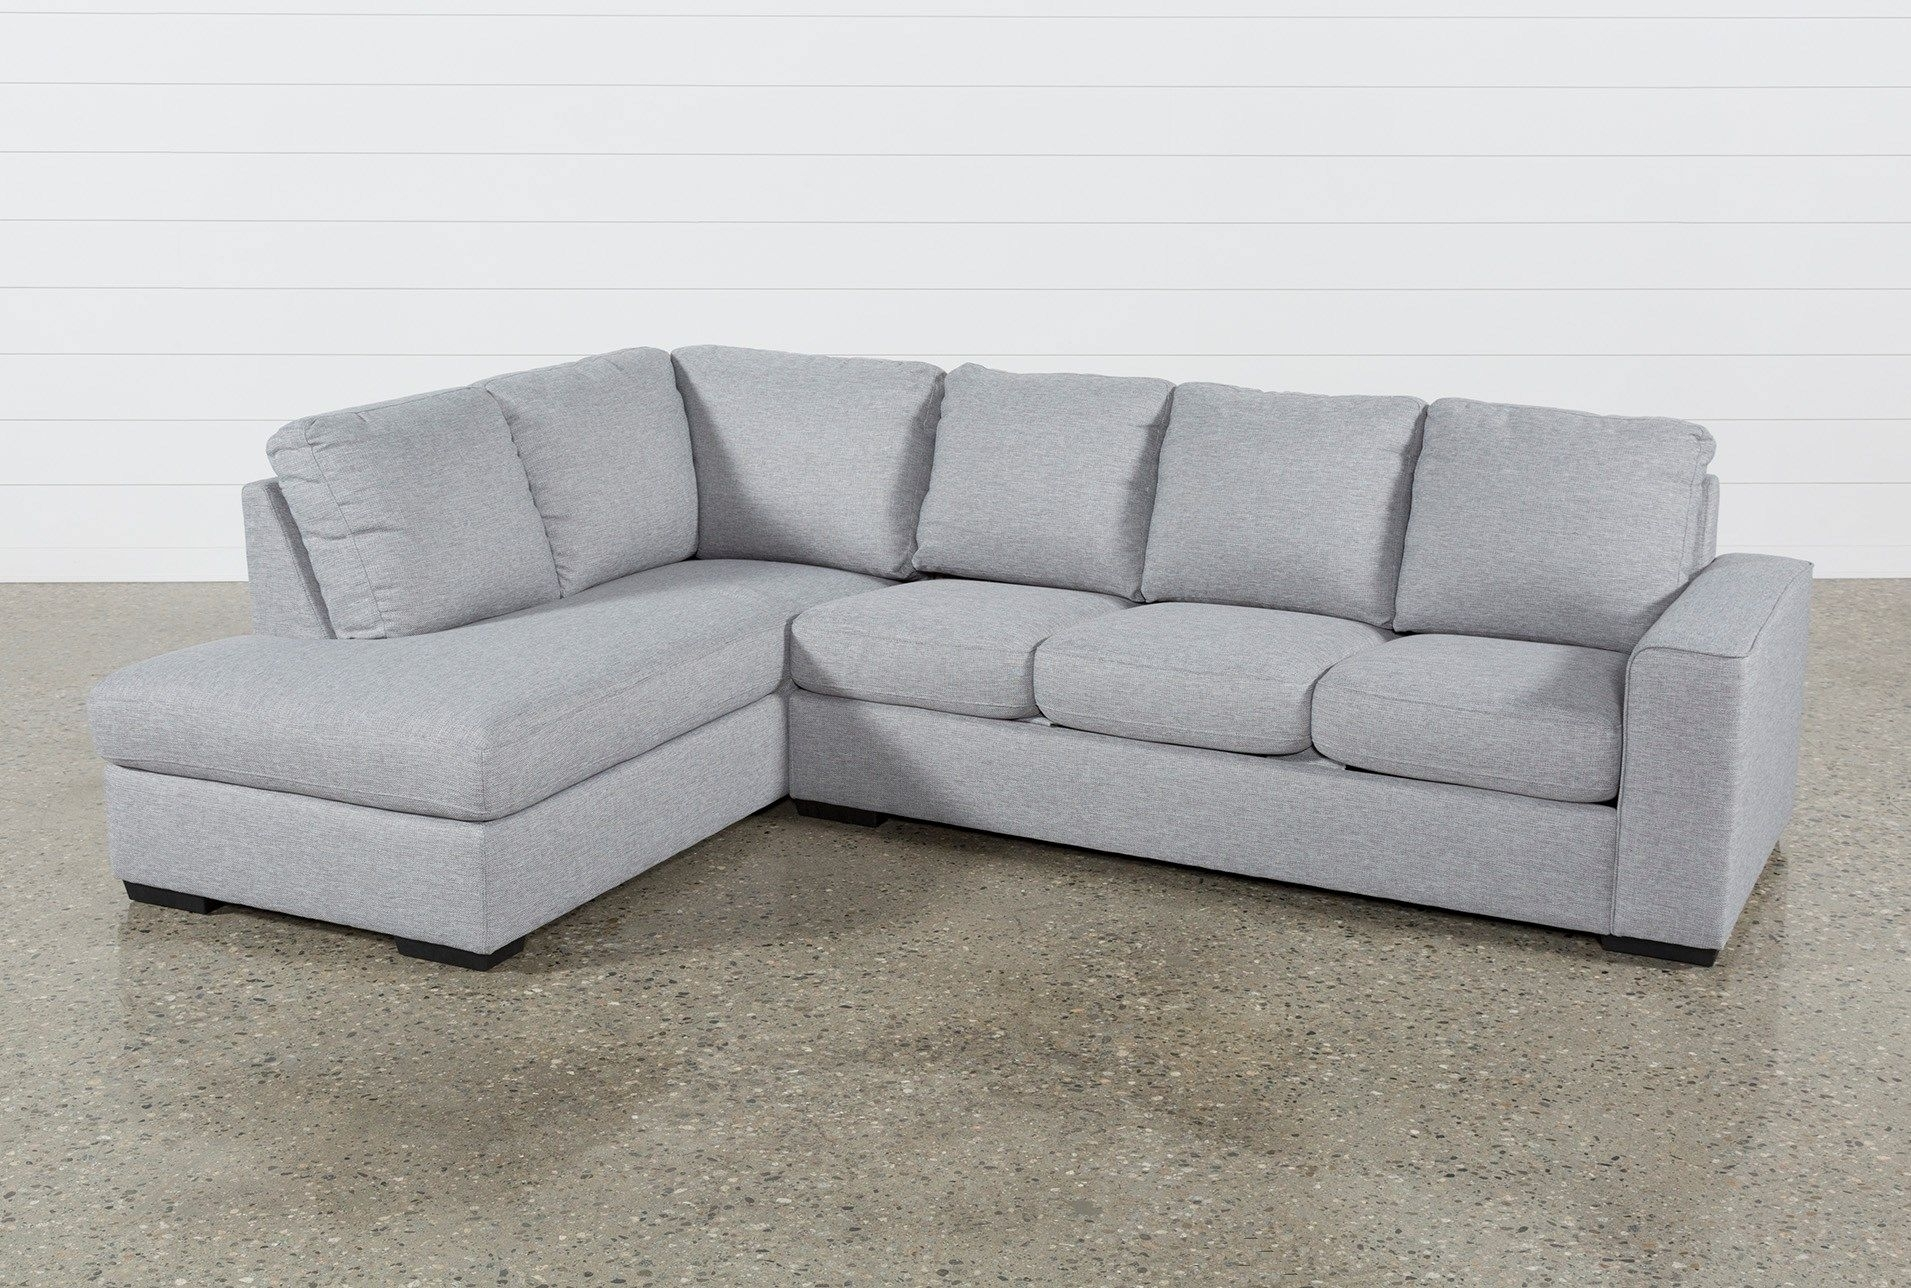 Lucy Grey 2 Piece Sectional W/laf Chaise | Tx House | Pinterest Inside Lucy Dark Grey 2 Piece Sleeper Sectionals With Raf Chaise (Image 15 of 25)